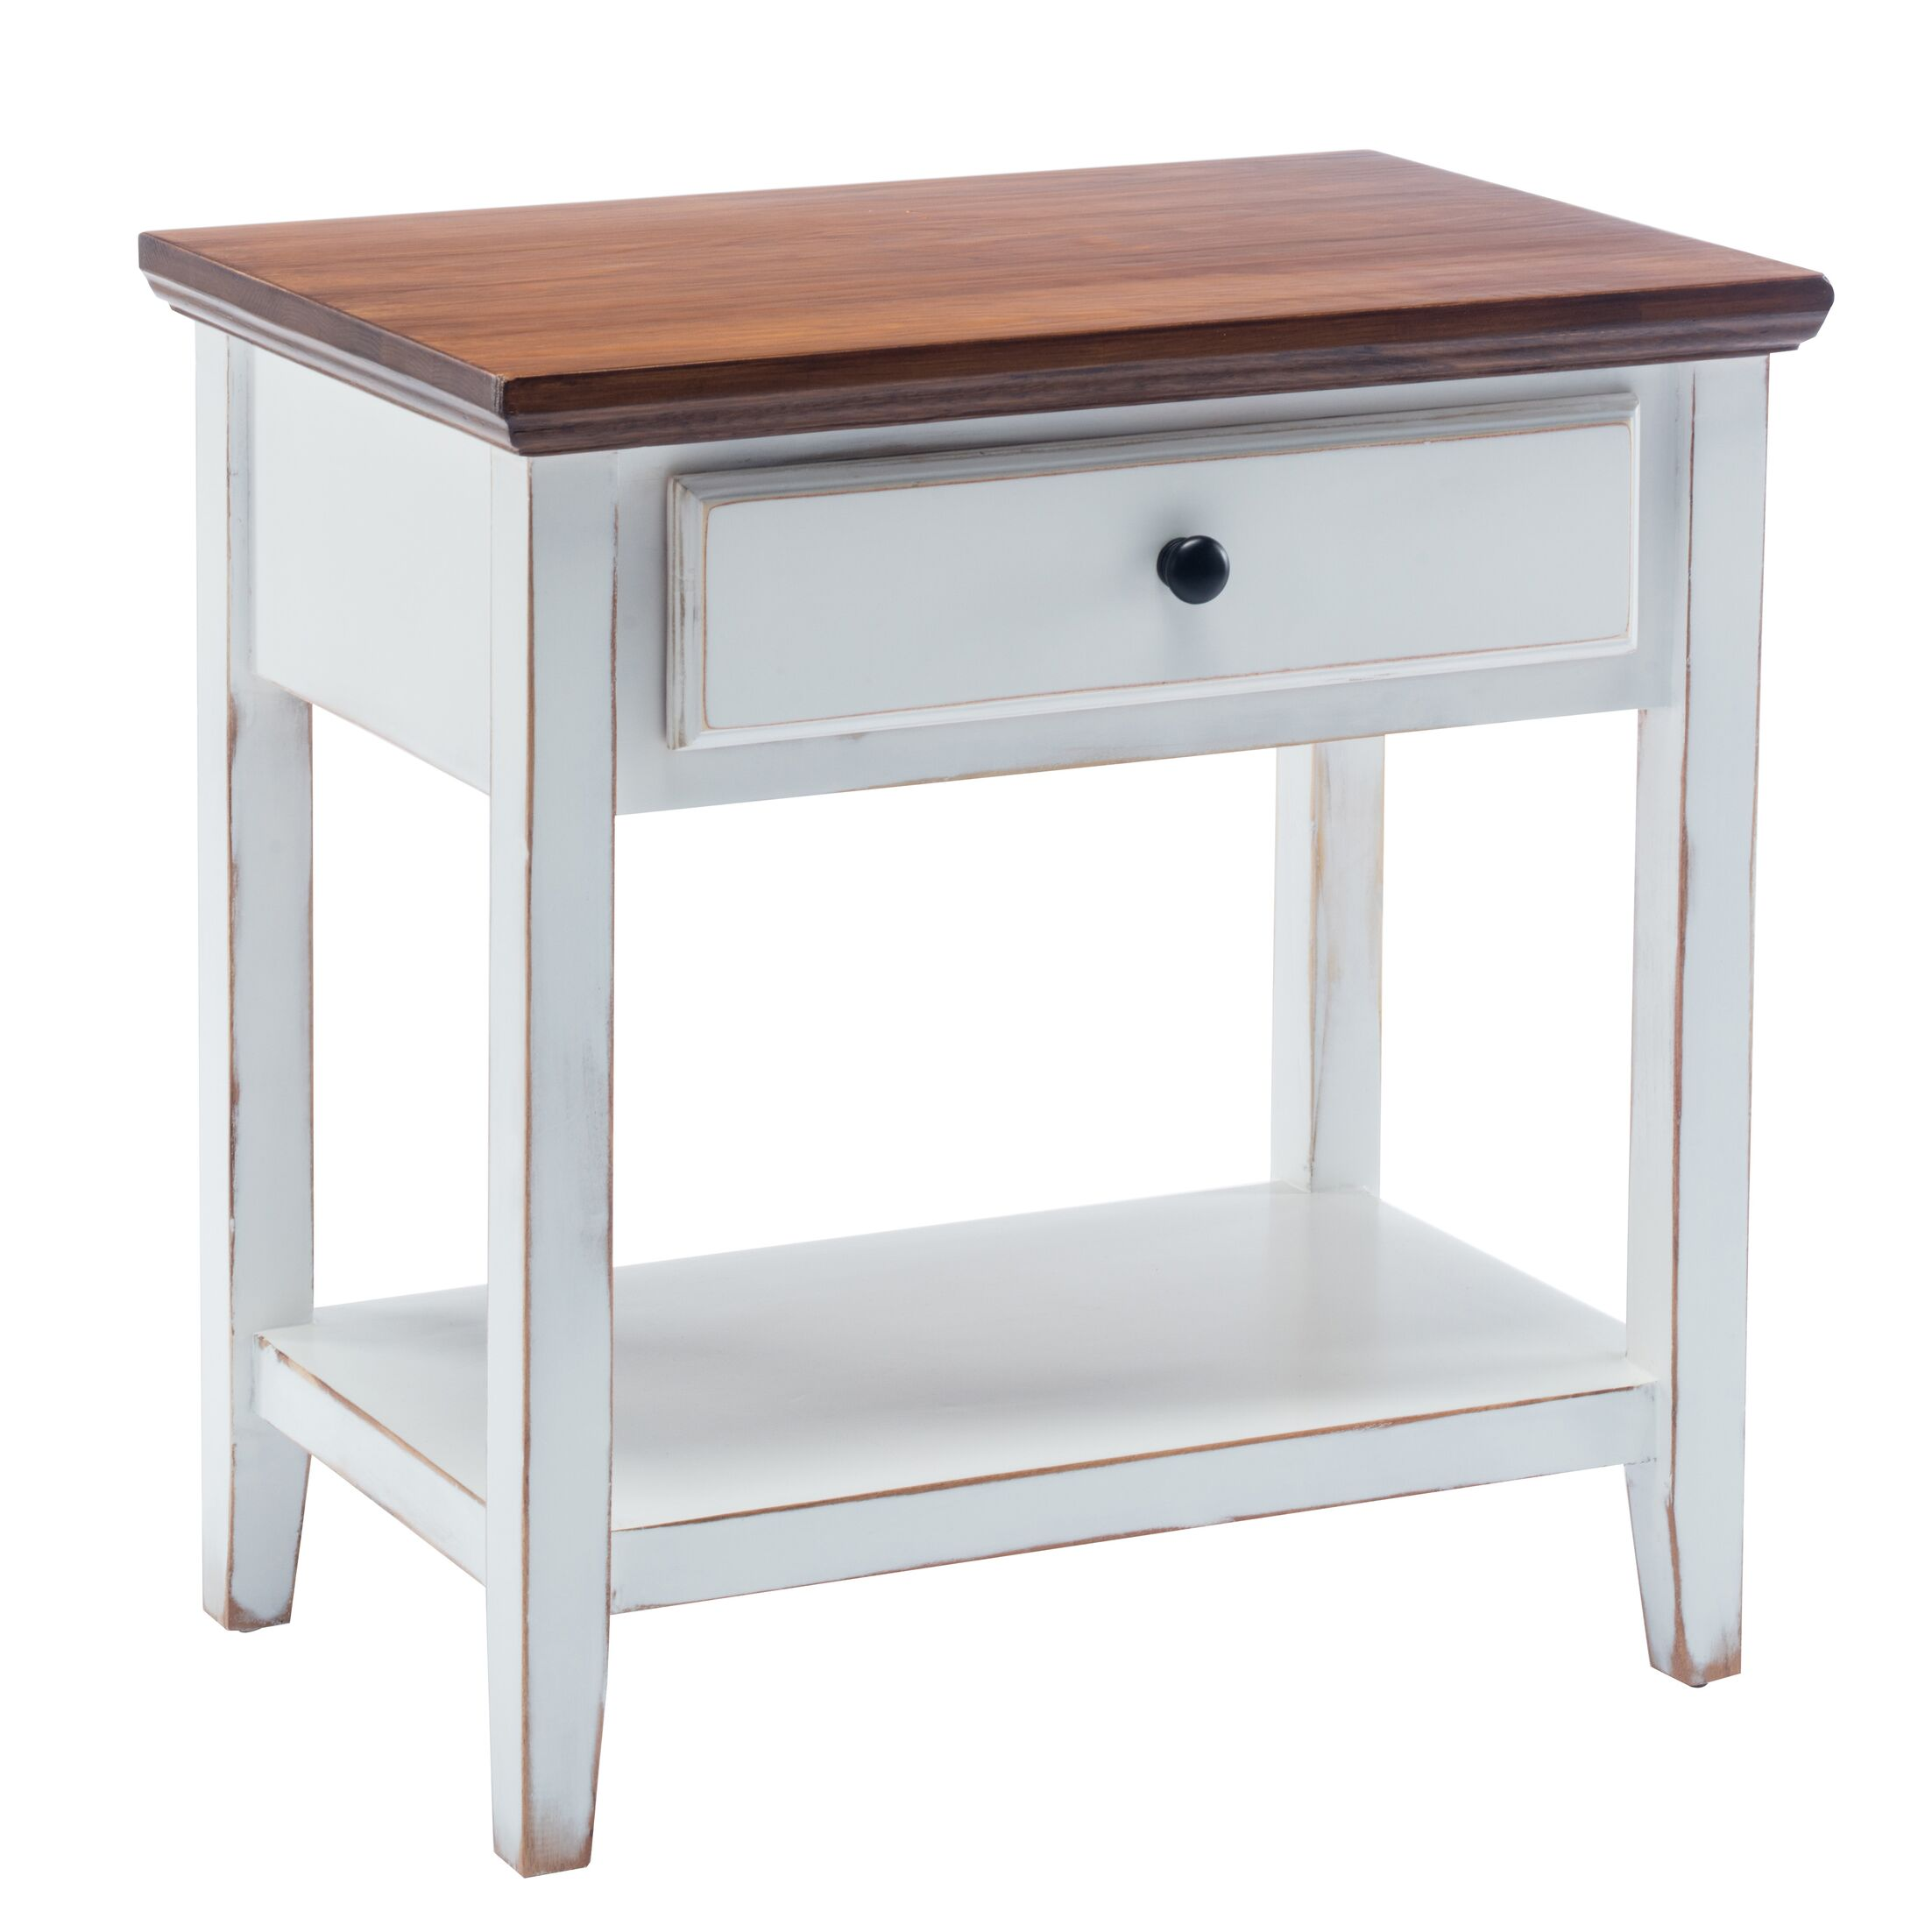 Aahil Deluxe Drawer Shelf End Table Table Base Color: White